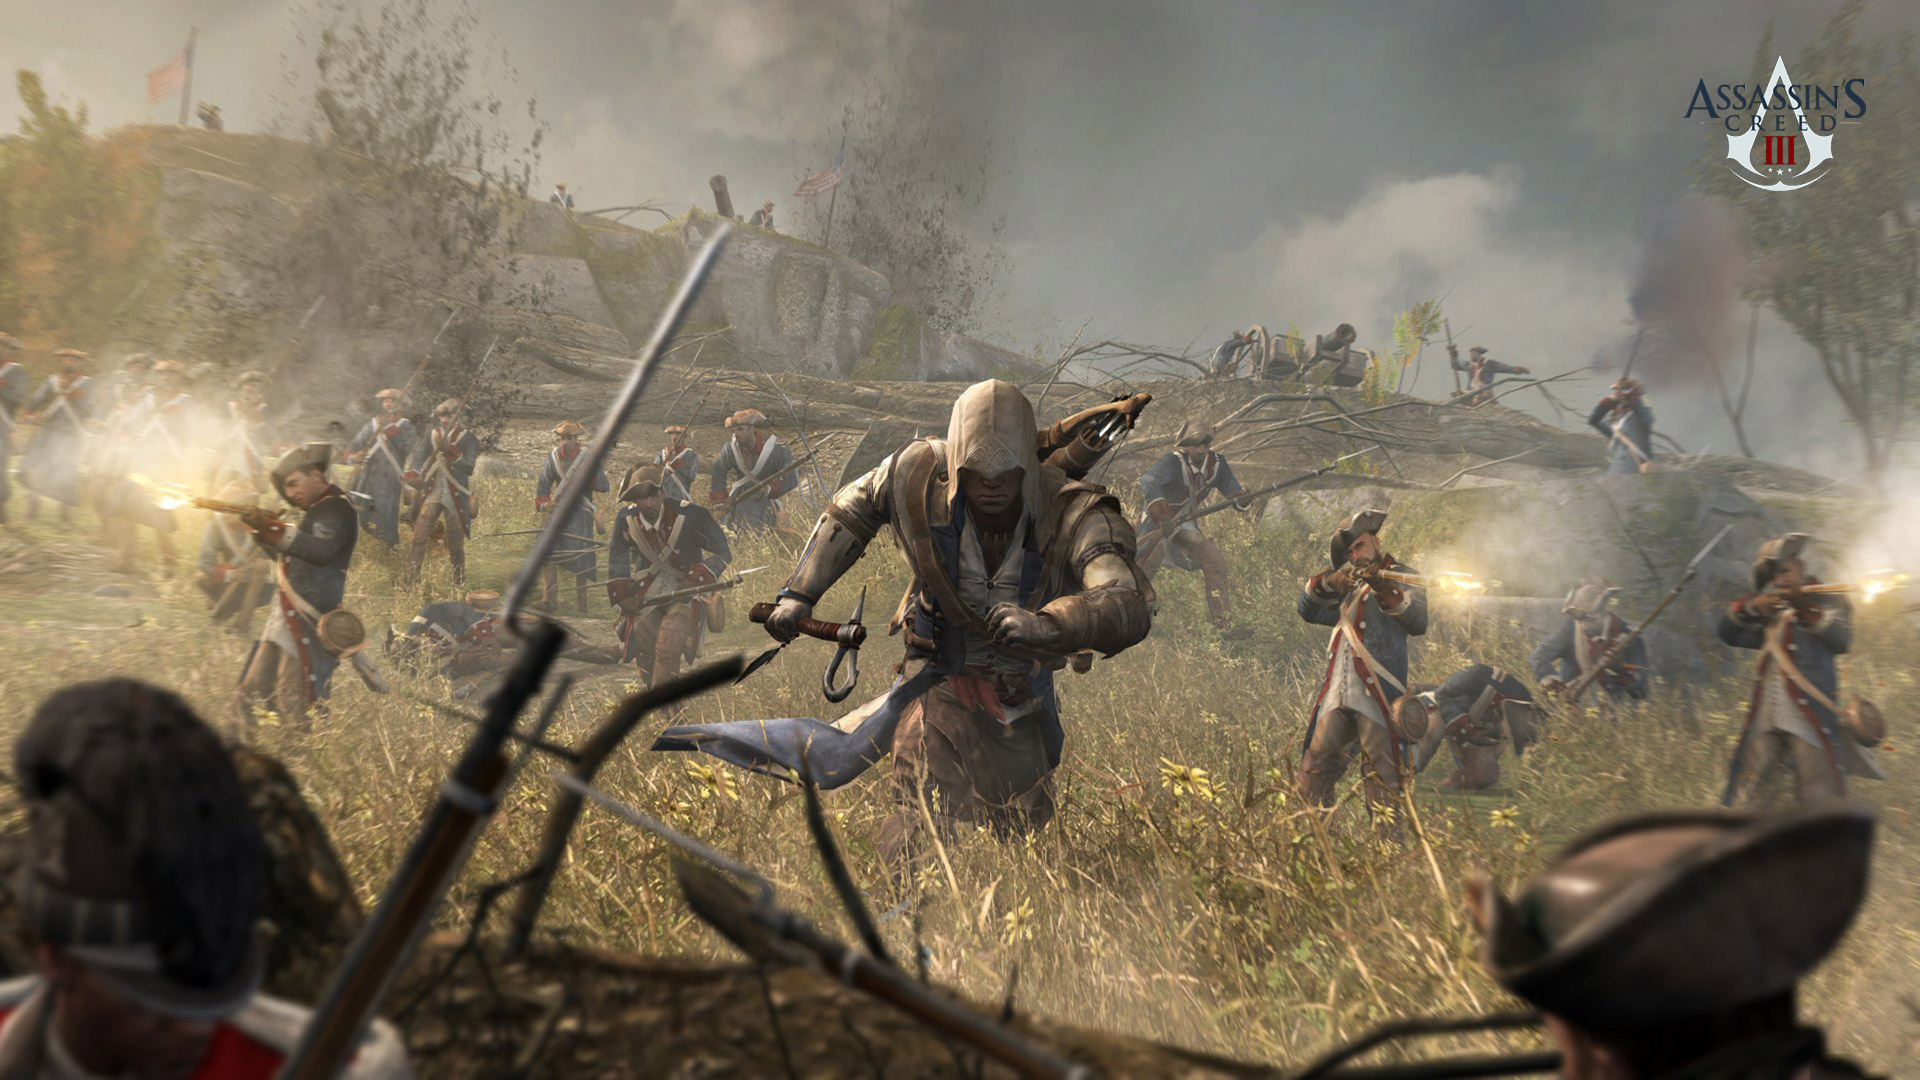 Assassin's Creed III Wallpaper in 1920x1080